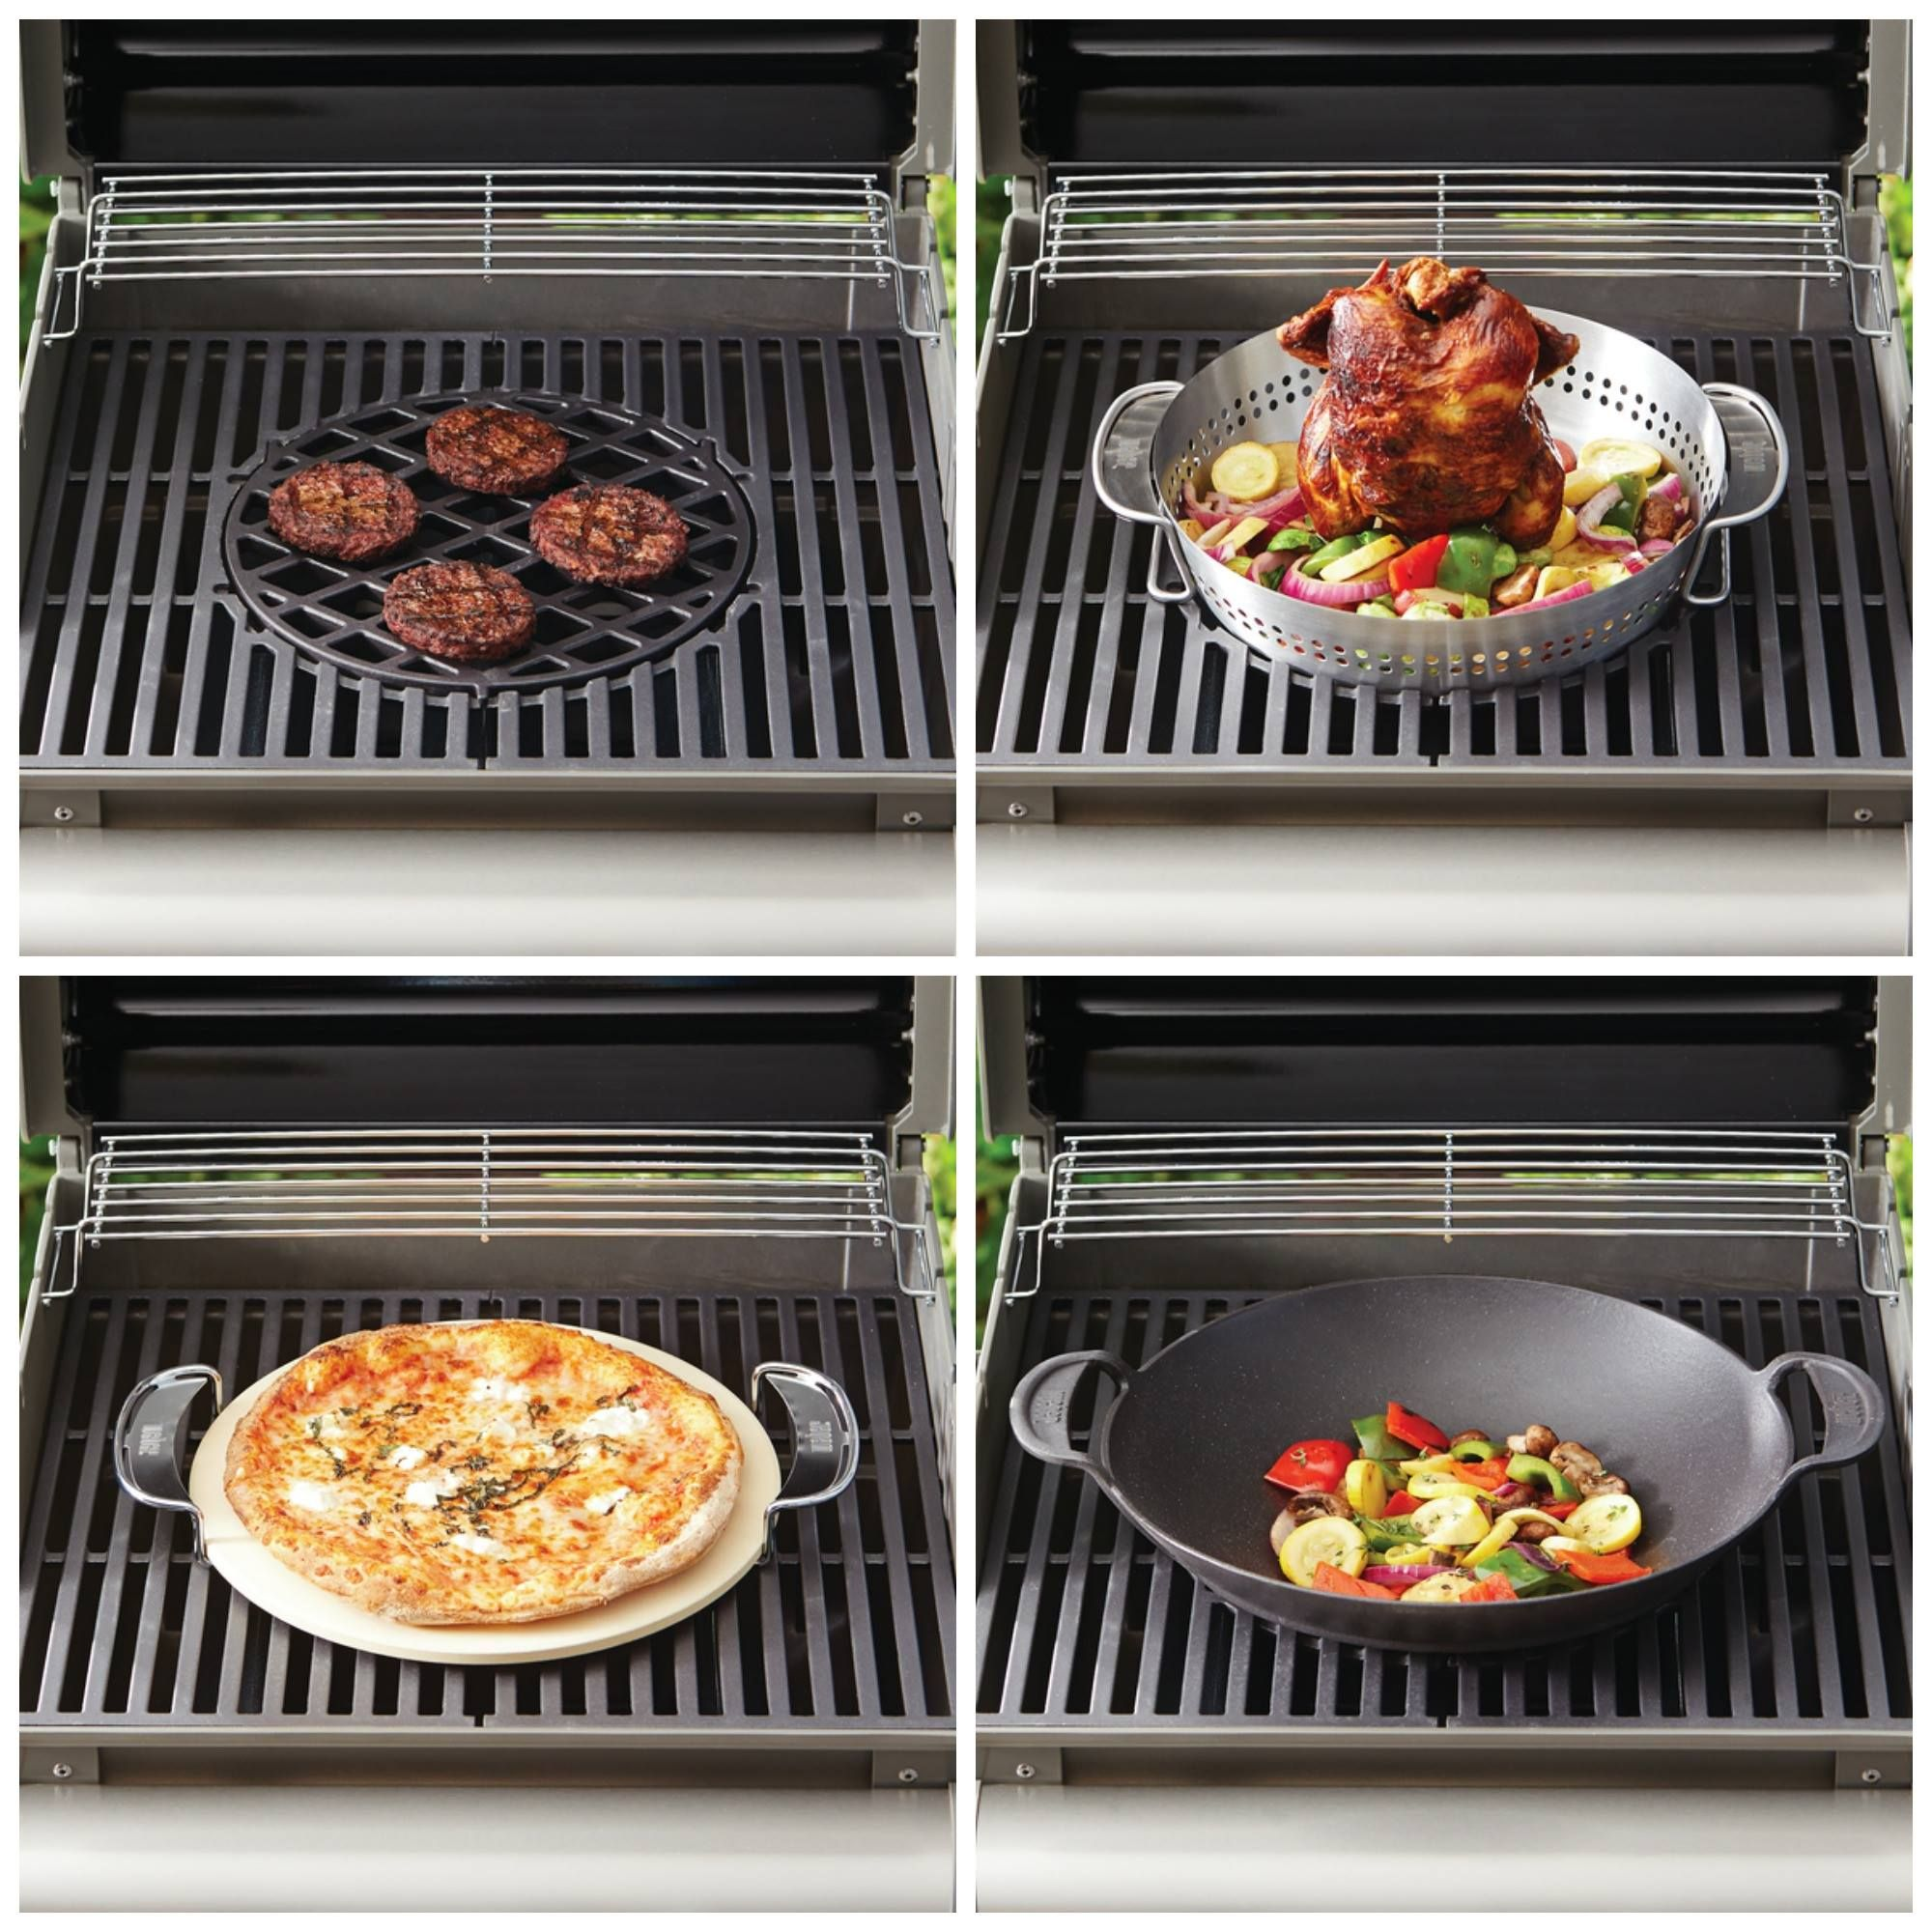 With The Weber Spirit Gourmet Bbq System You Ll Be Making More Than Just Burgers Accessories